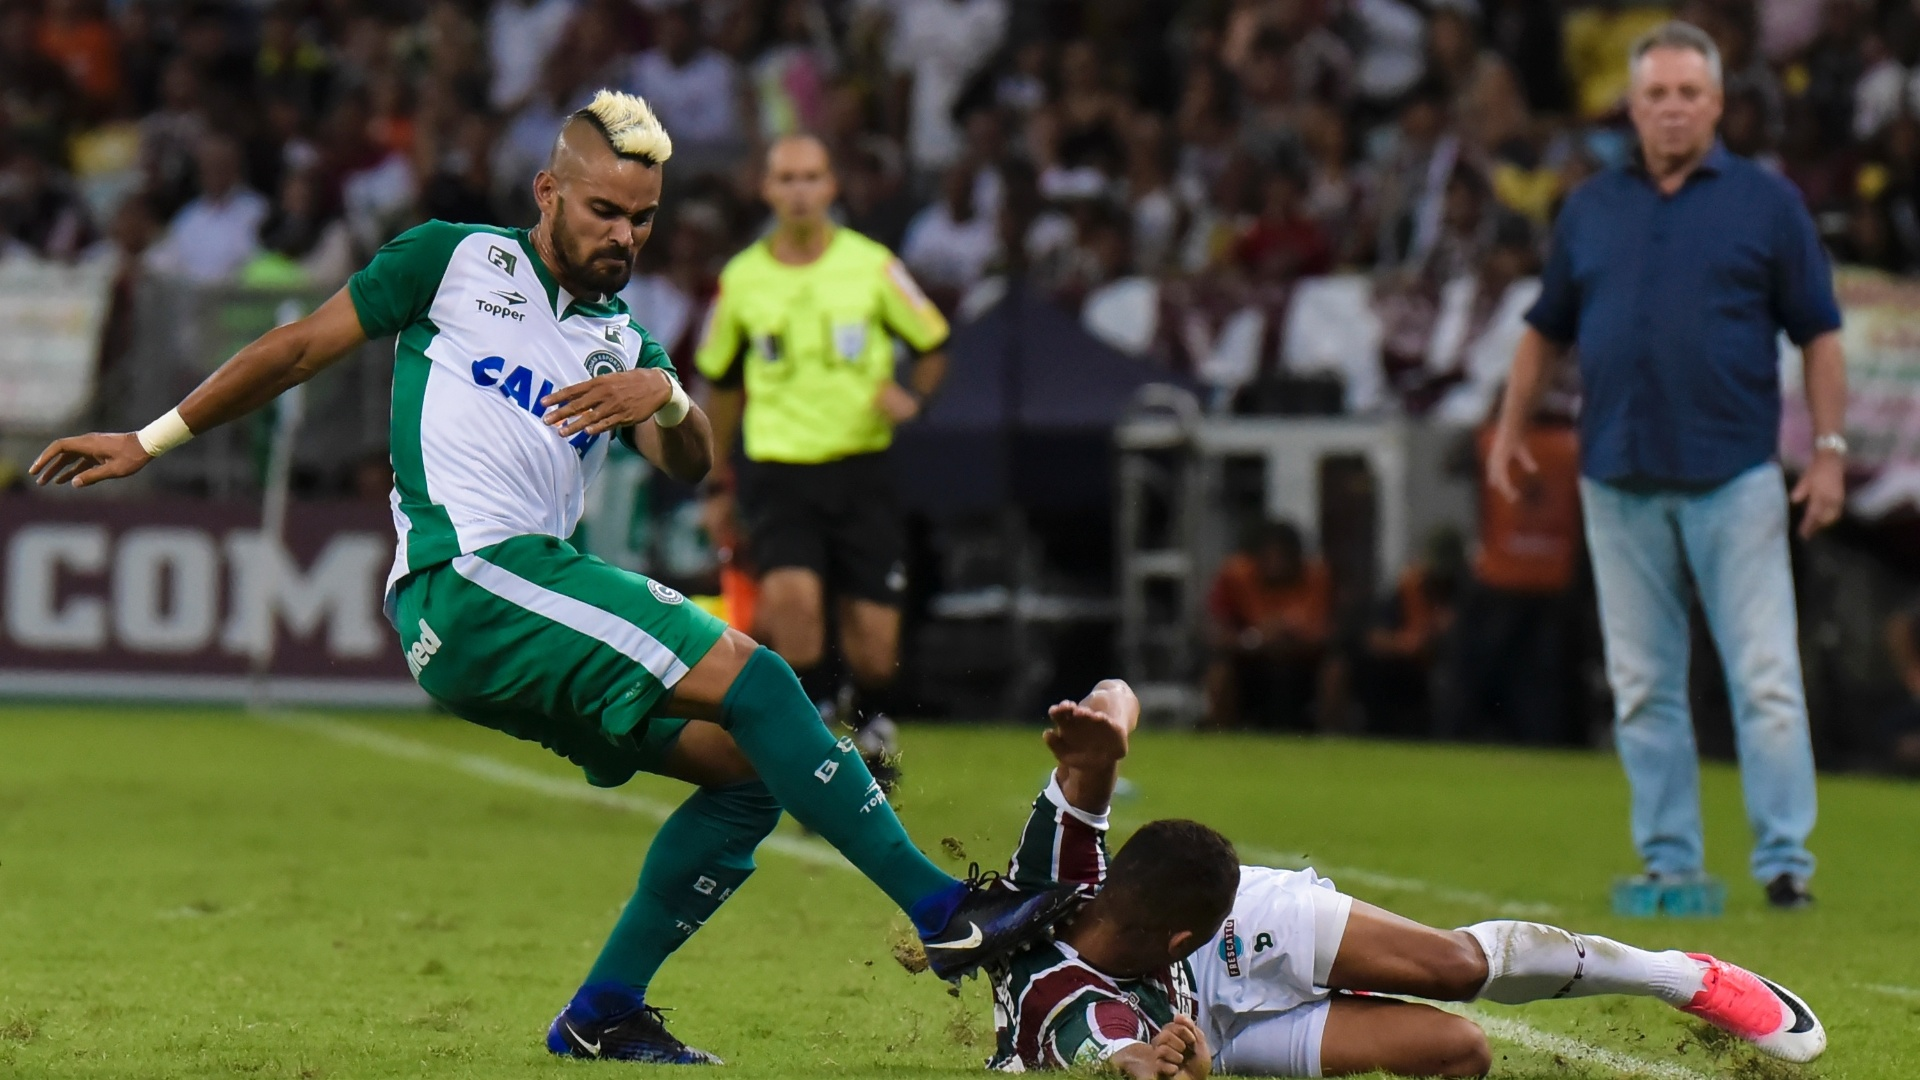 Lance forte entre Tony, do Goiás, e Richarlison, do Fluminense